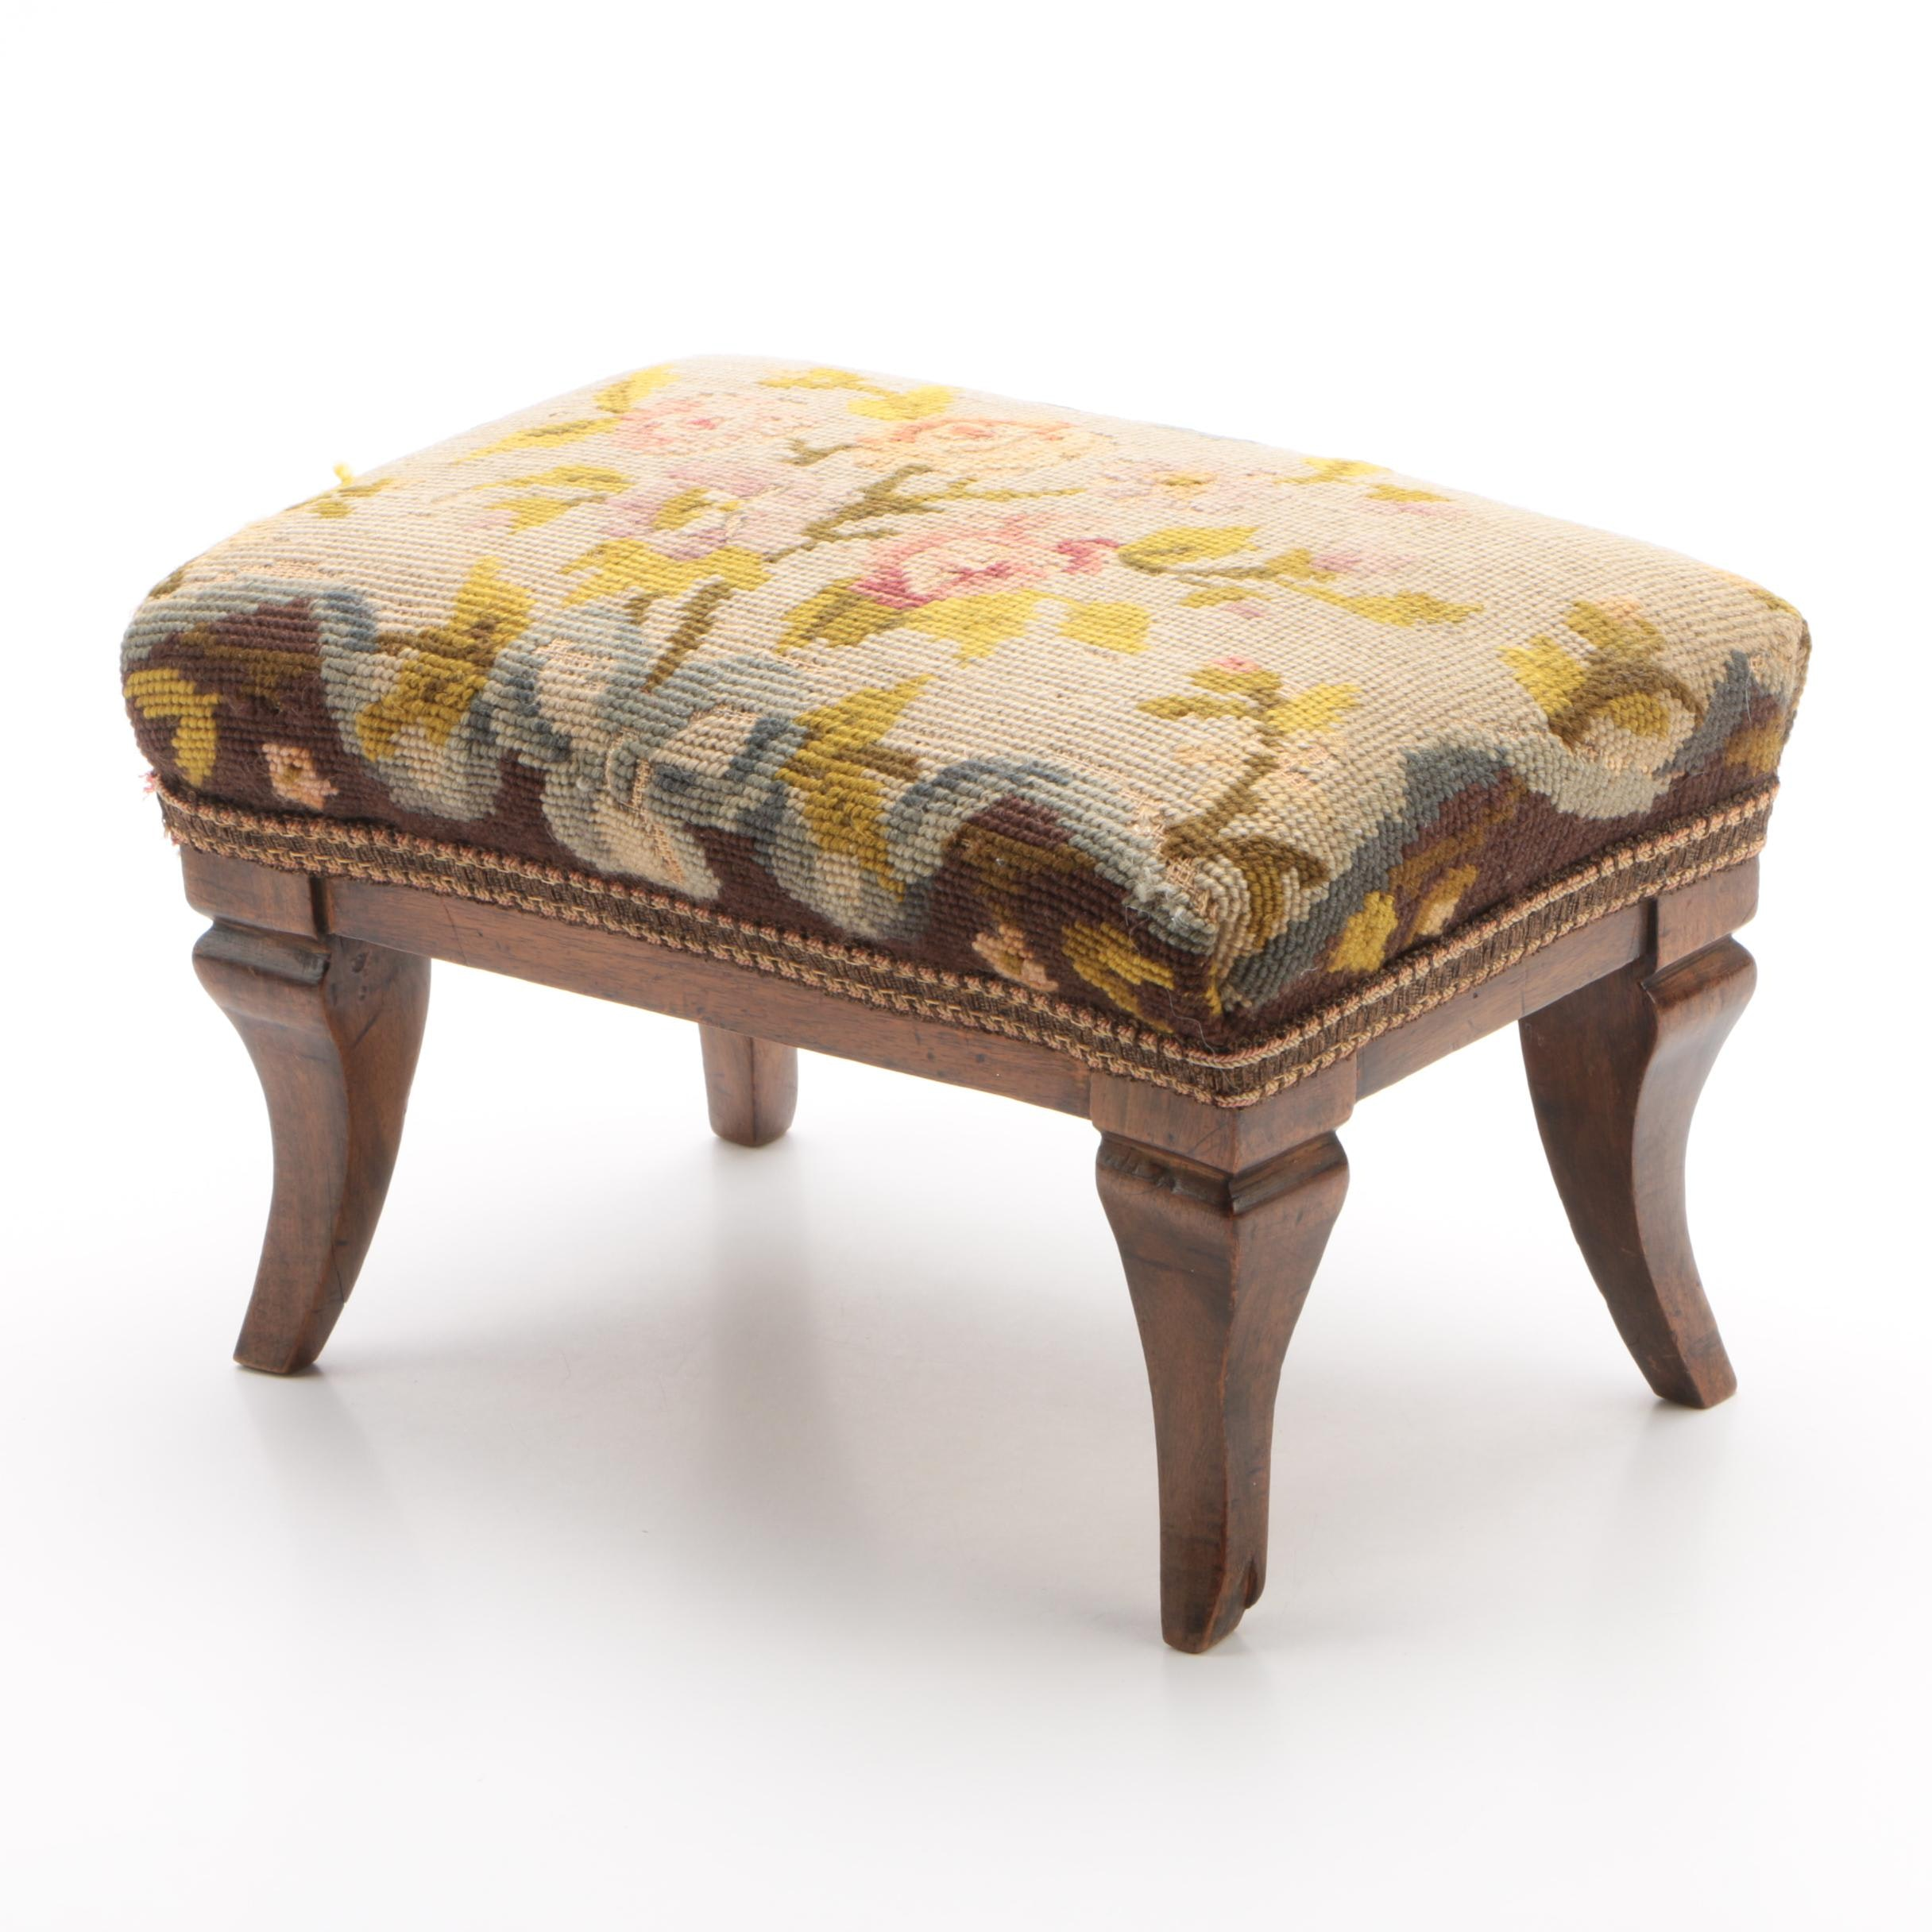 Upholstered Walnut Footstool, 20th Century